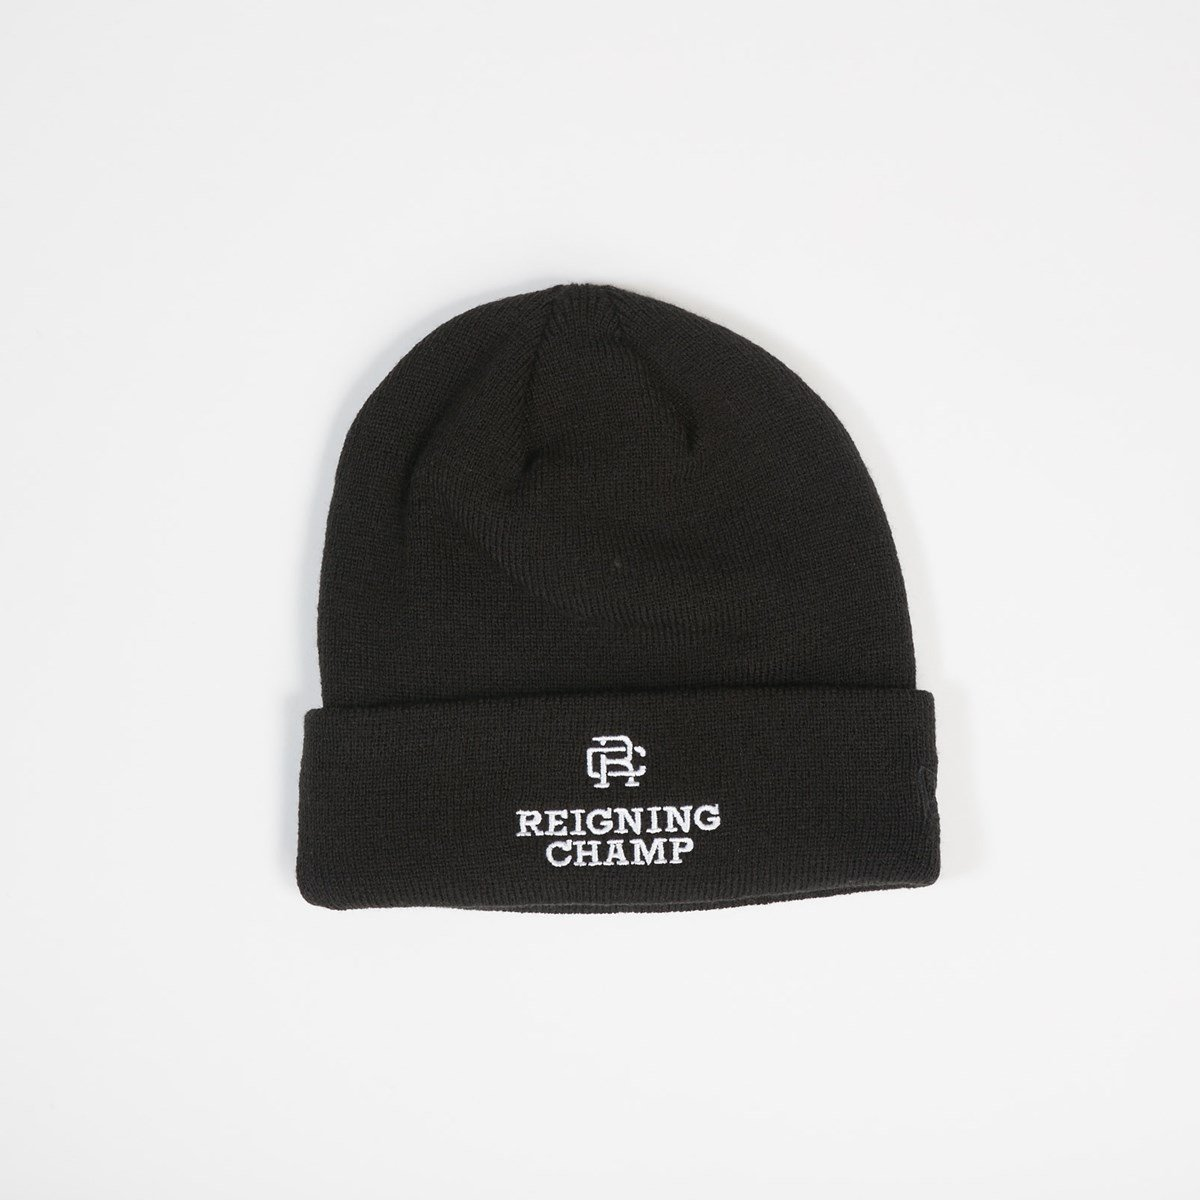 reigning champ embroidered new era beanie rc 7077 blk sneakers   streetwear  på nät... SNEAKERSNSTUFF c619b13a177a